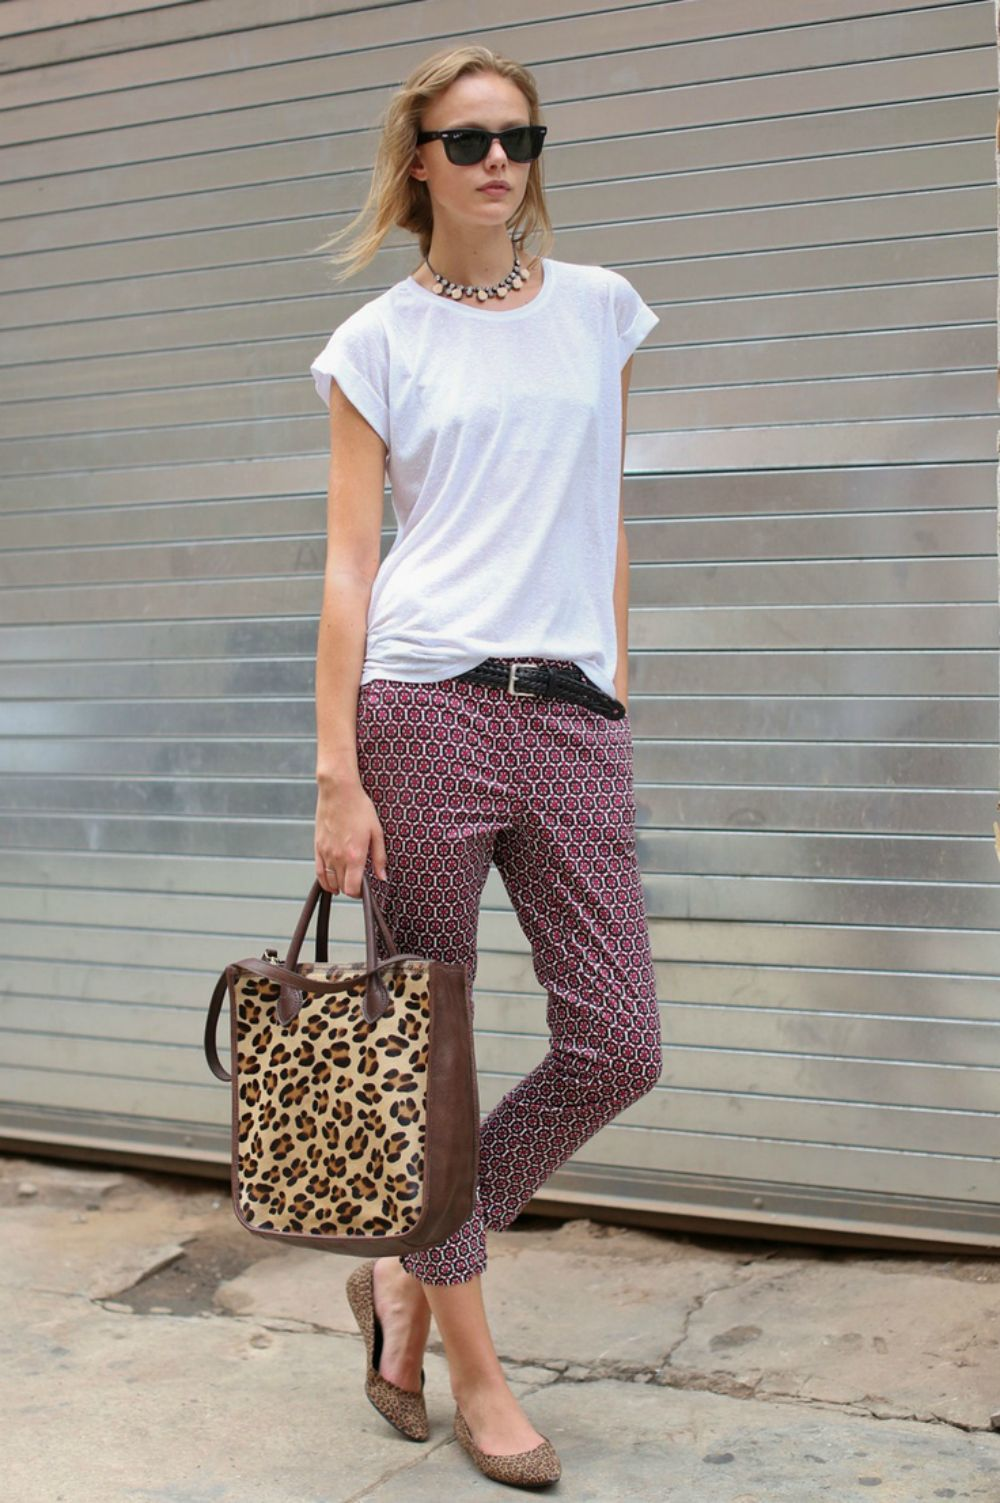 patterned pants + leopard + white tee